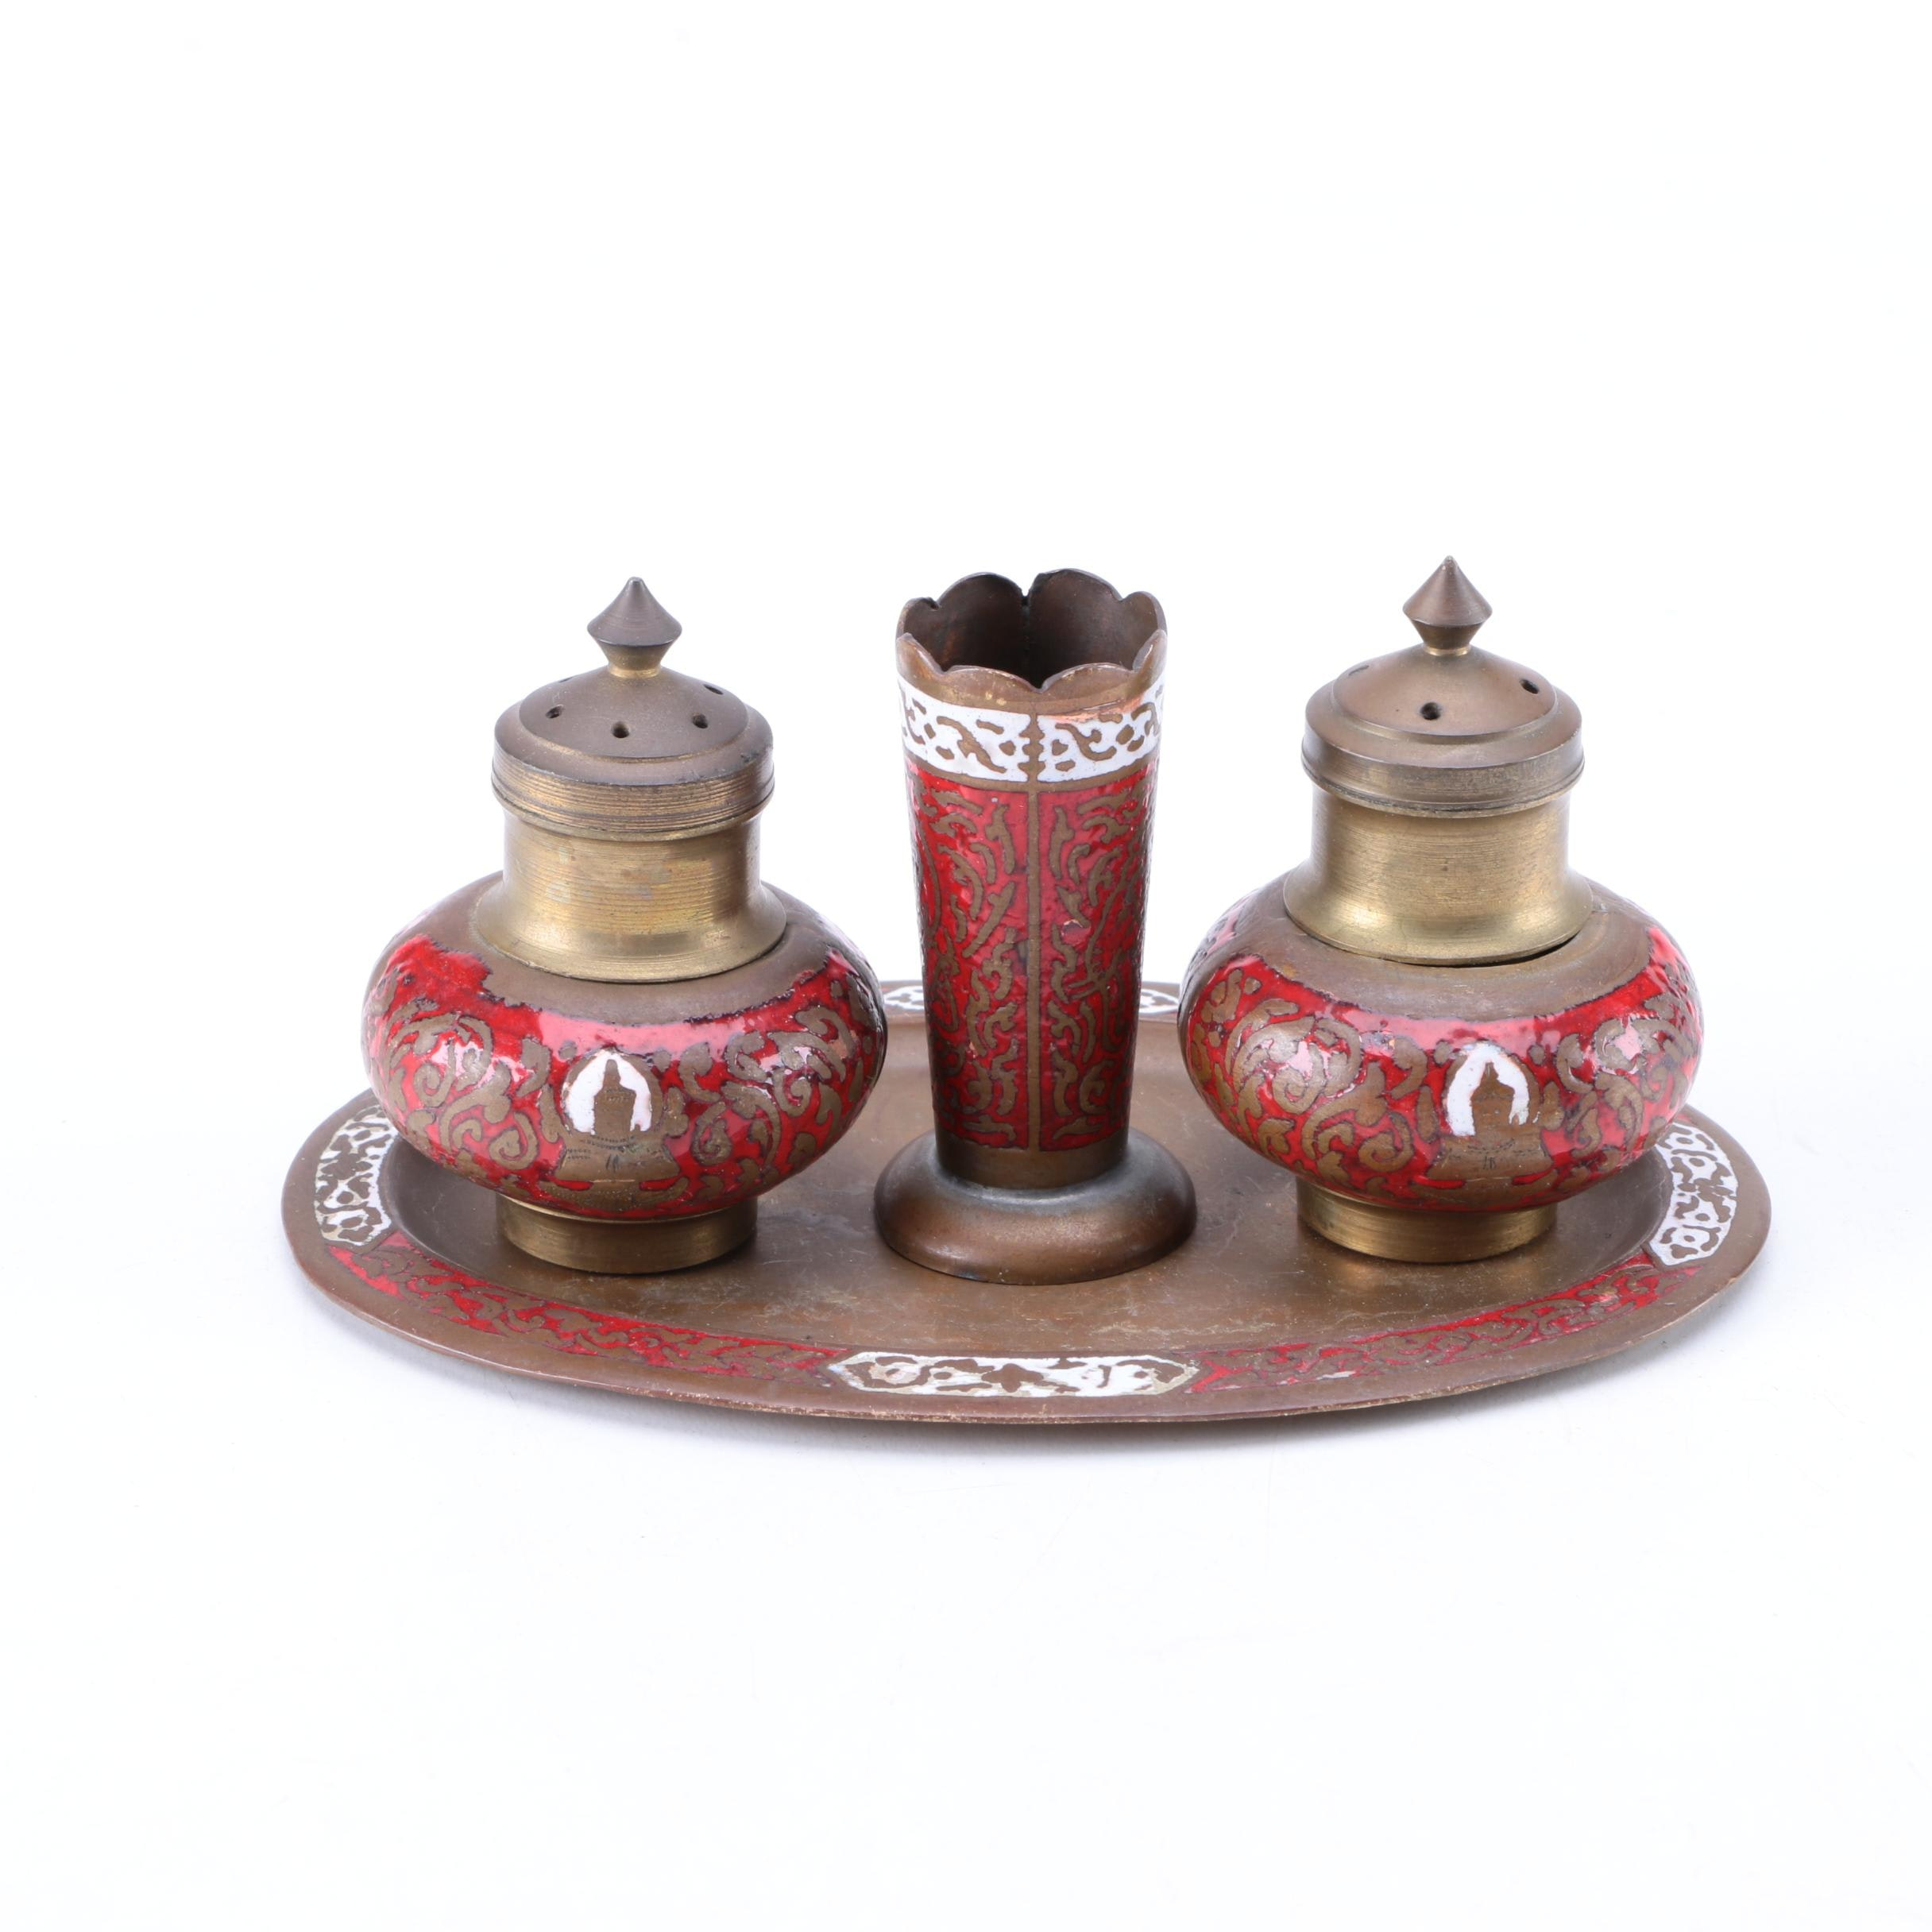 South Asian Champlevé Shaker Set with Toothpick Holder